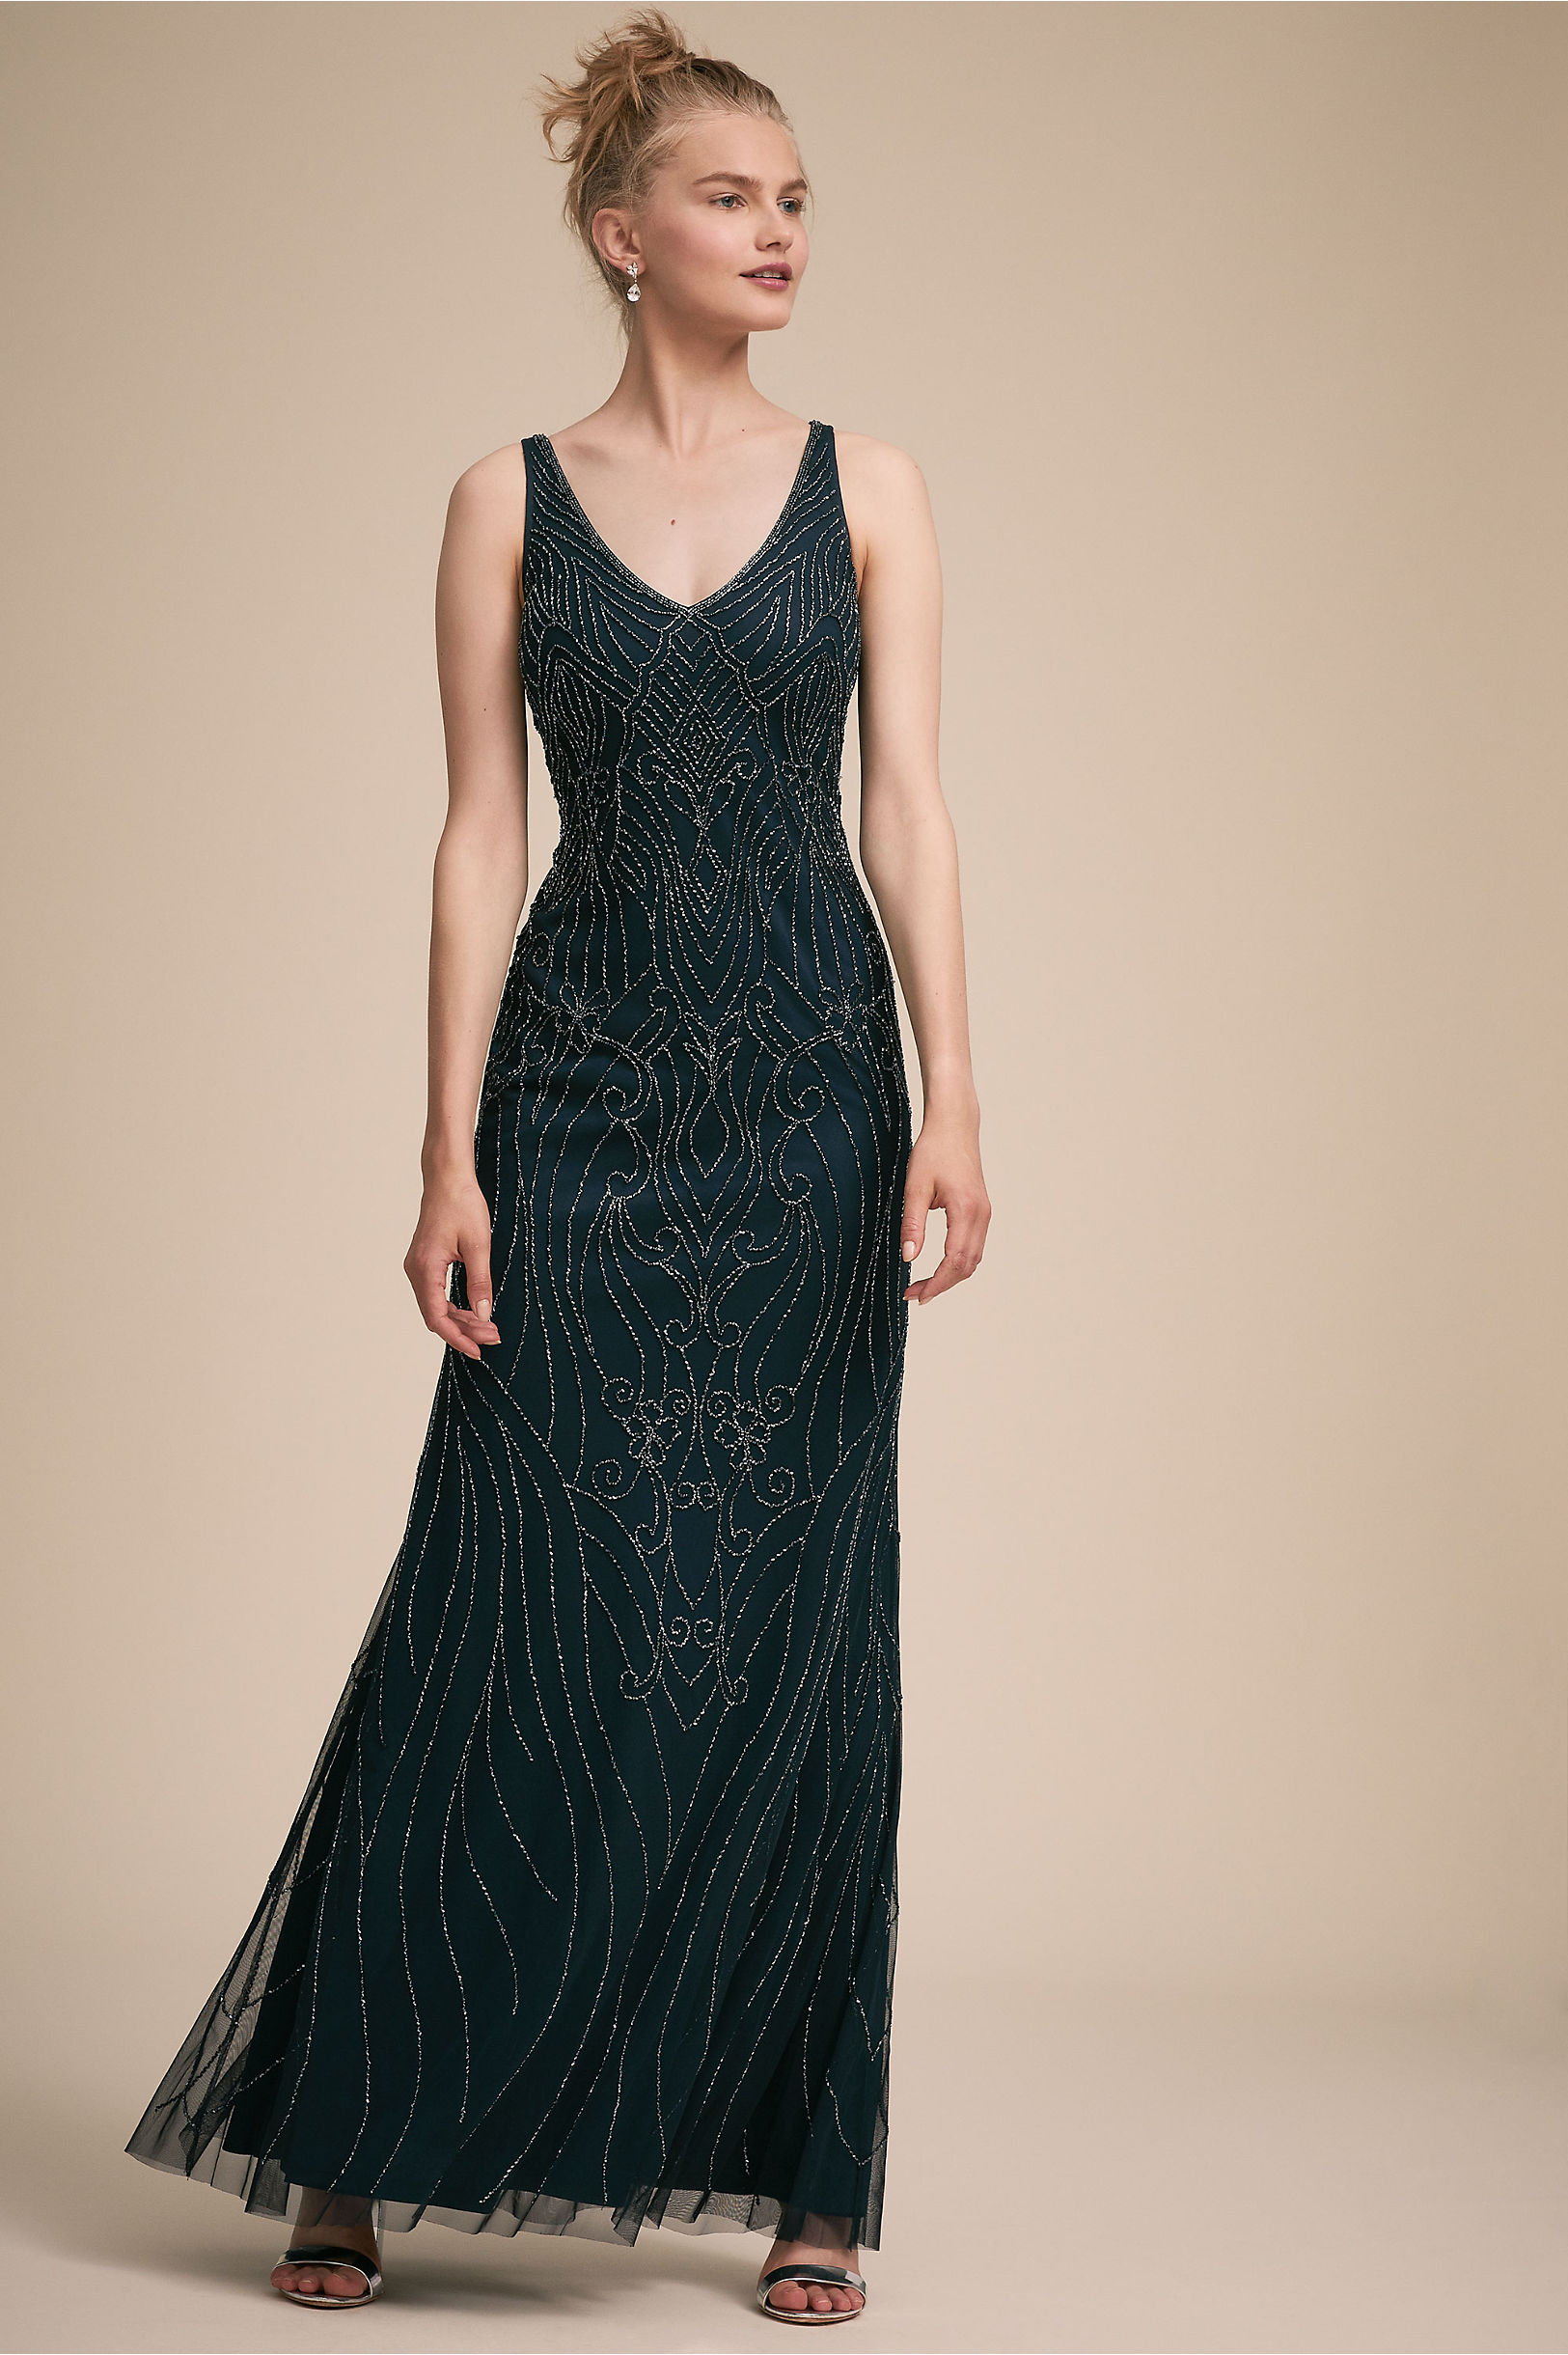 1930s Evening Dresses | Old Hollywood Dress Sutton Dress $240.00 AT vintagedancer.com